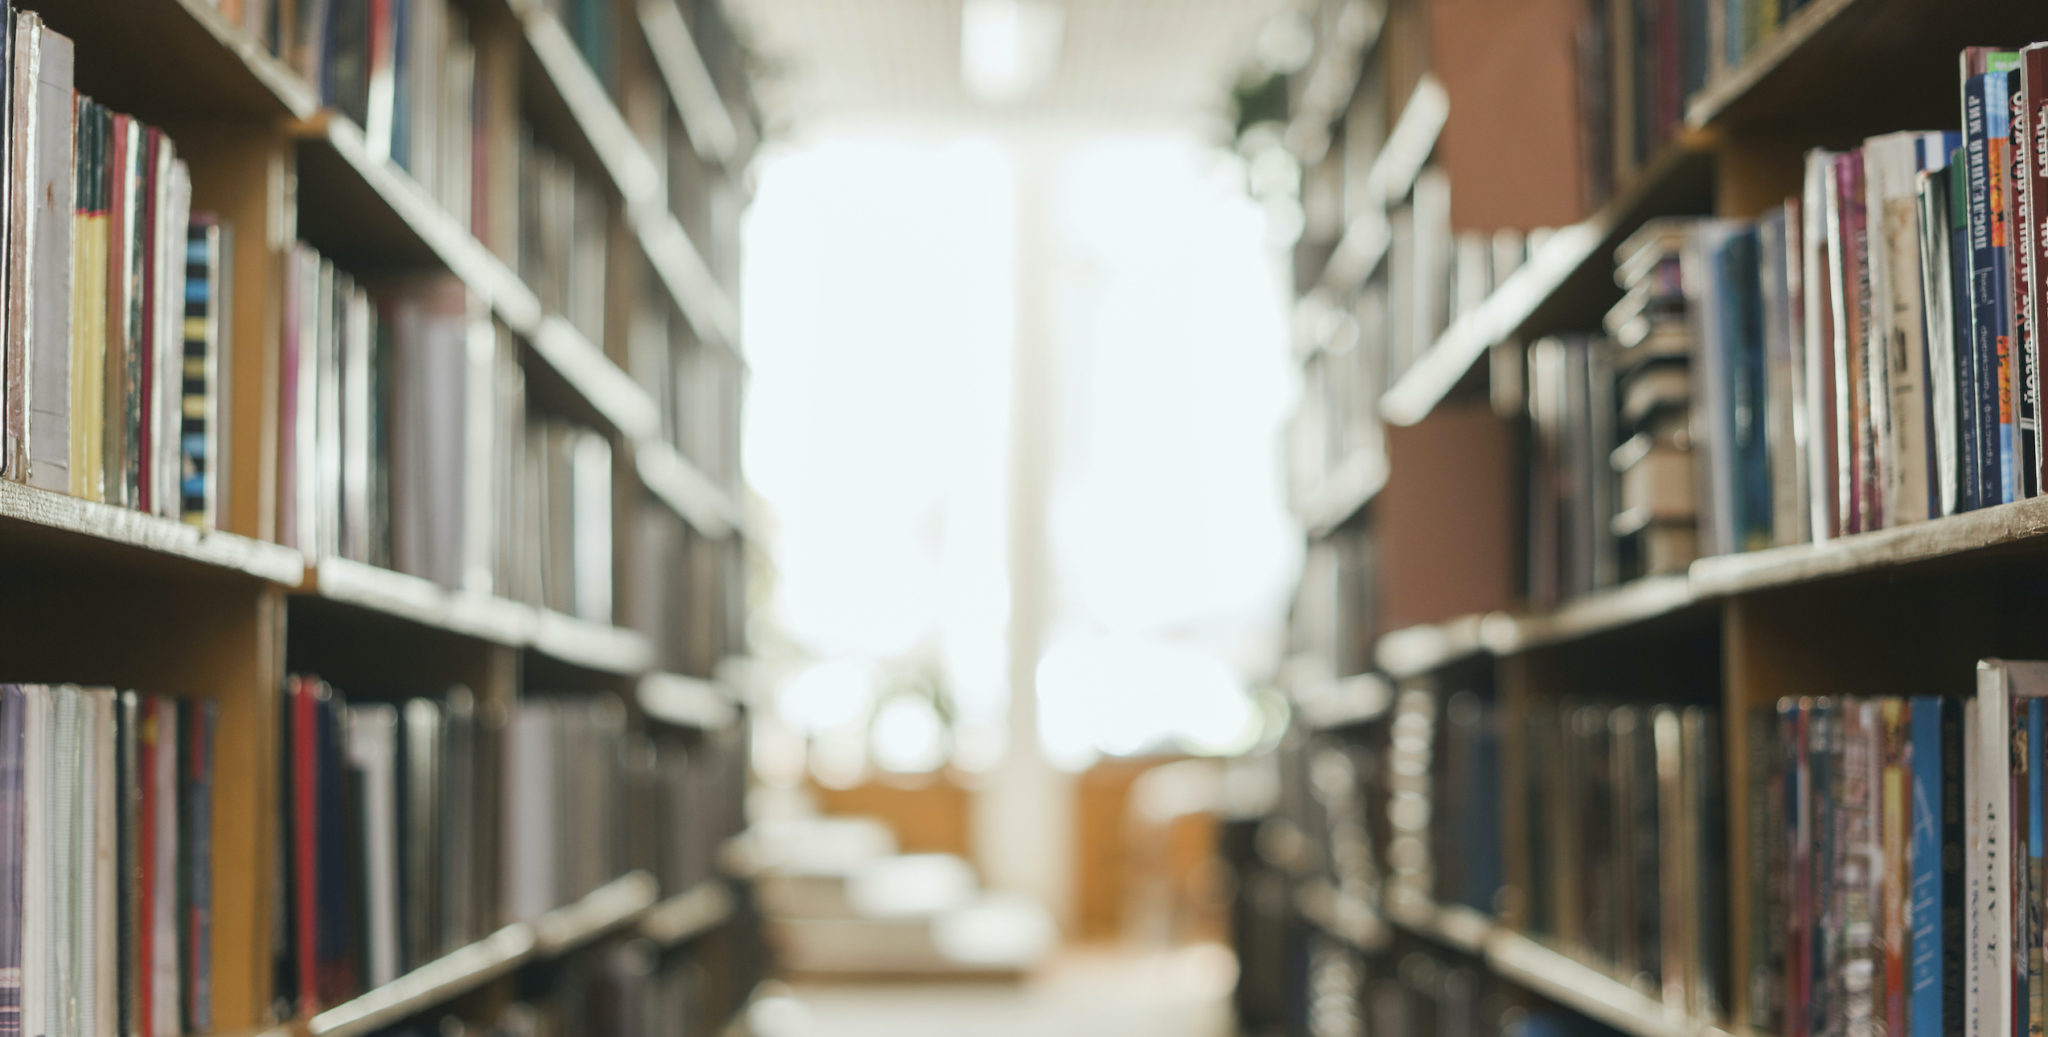 Digital library collections: universities 'seen as a cash cow' by publishers